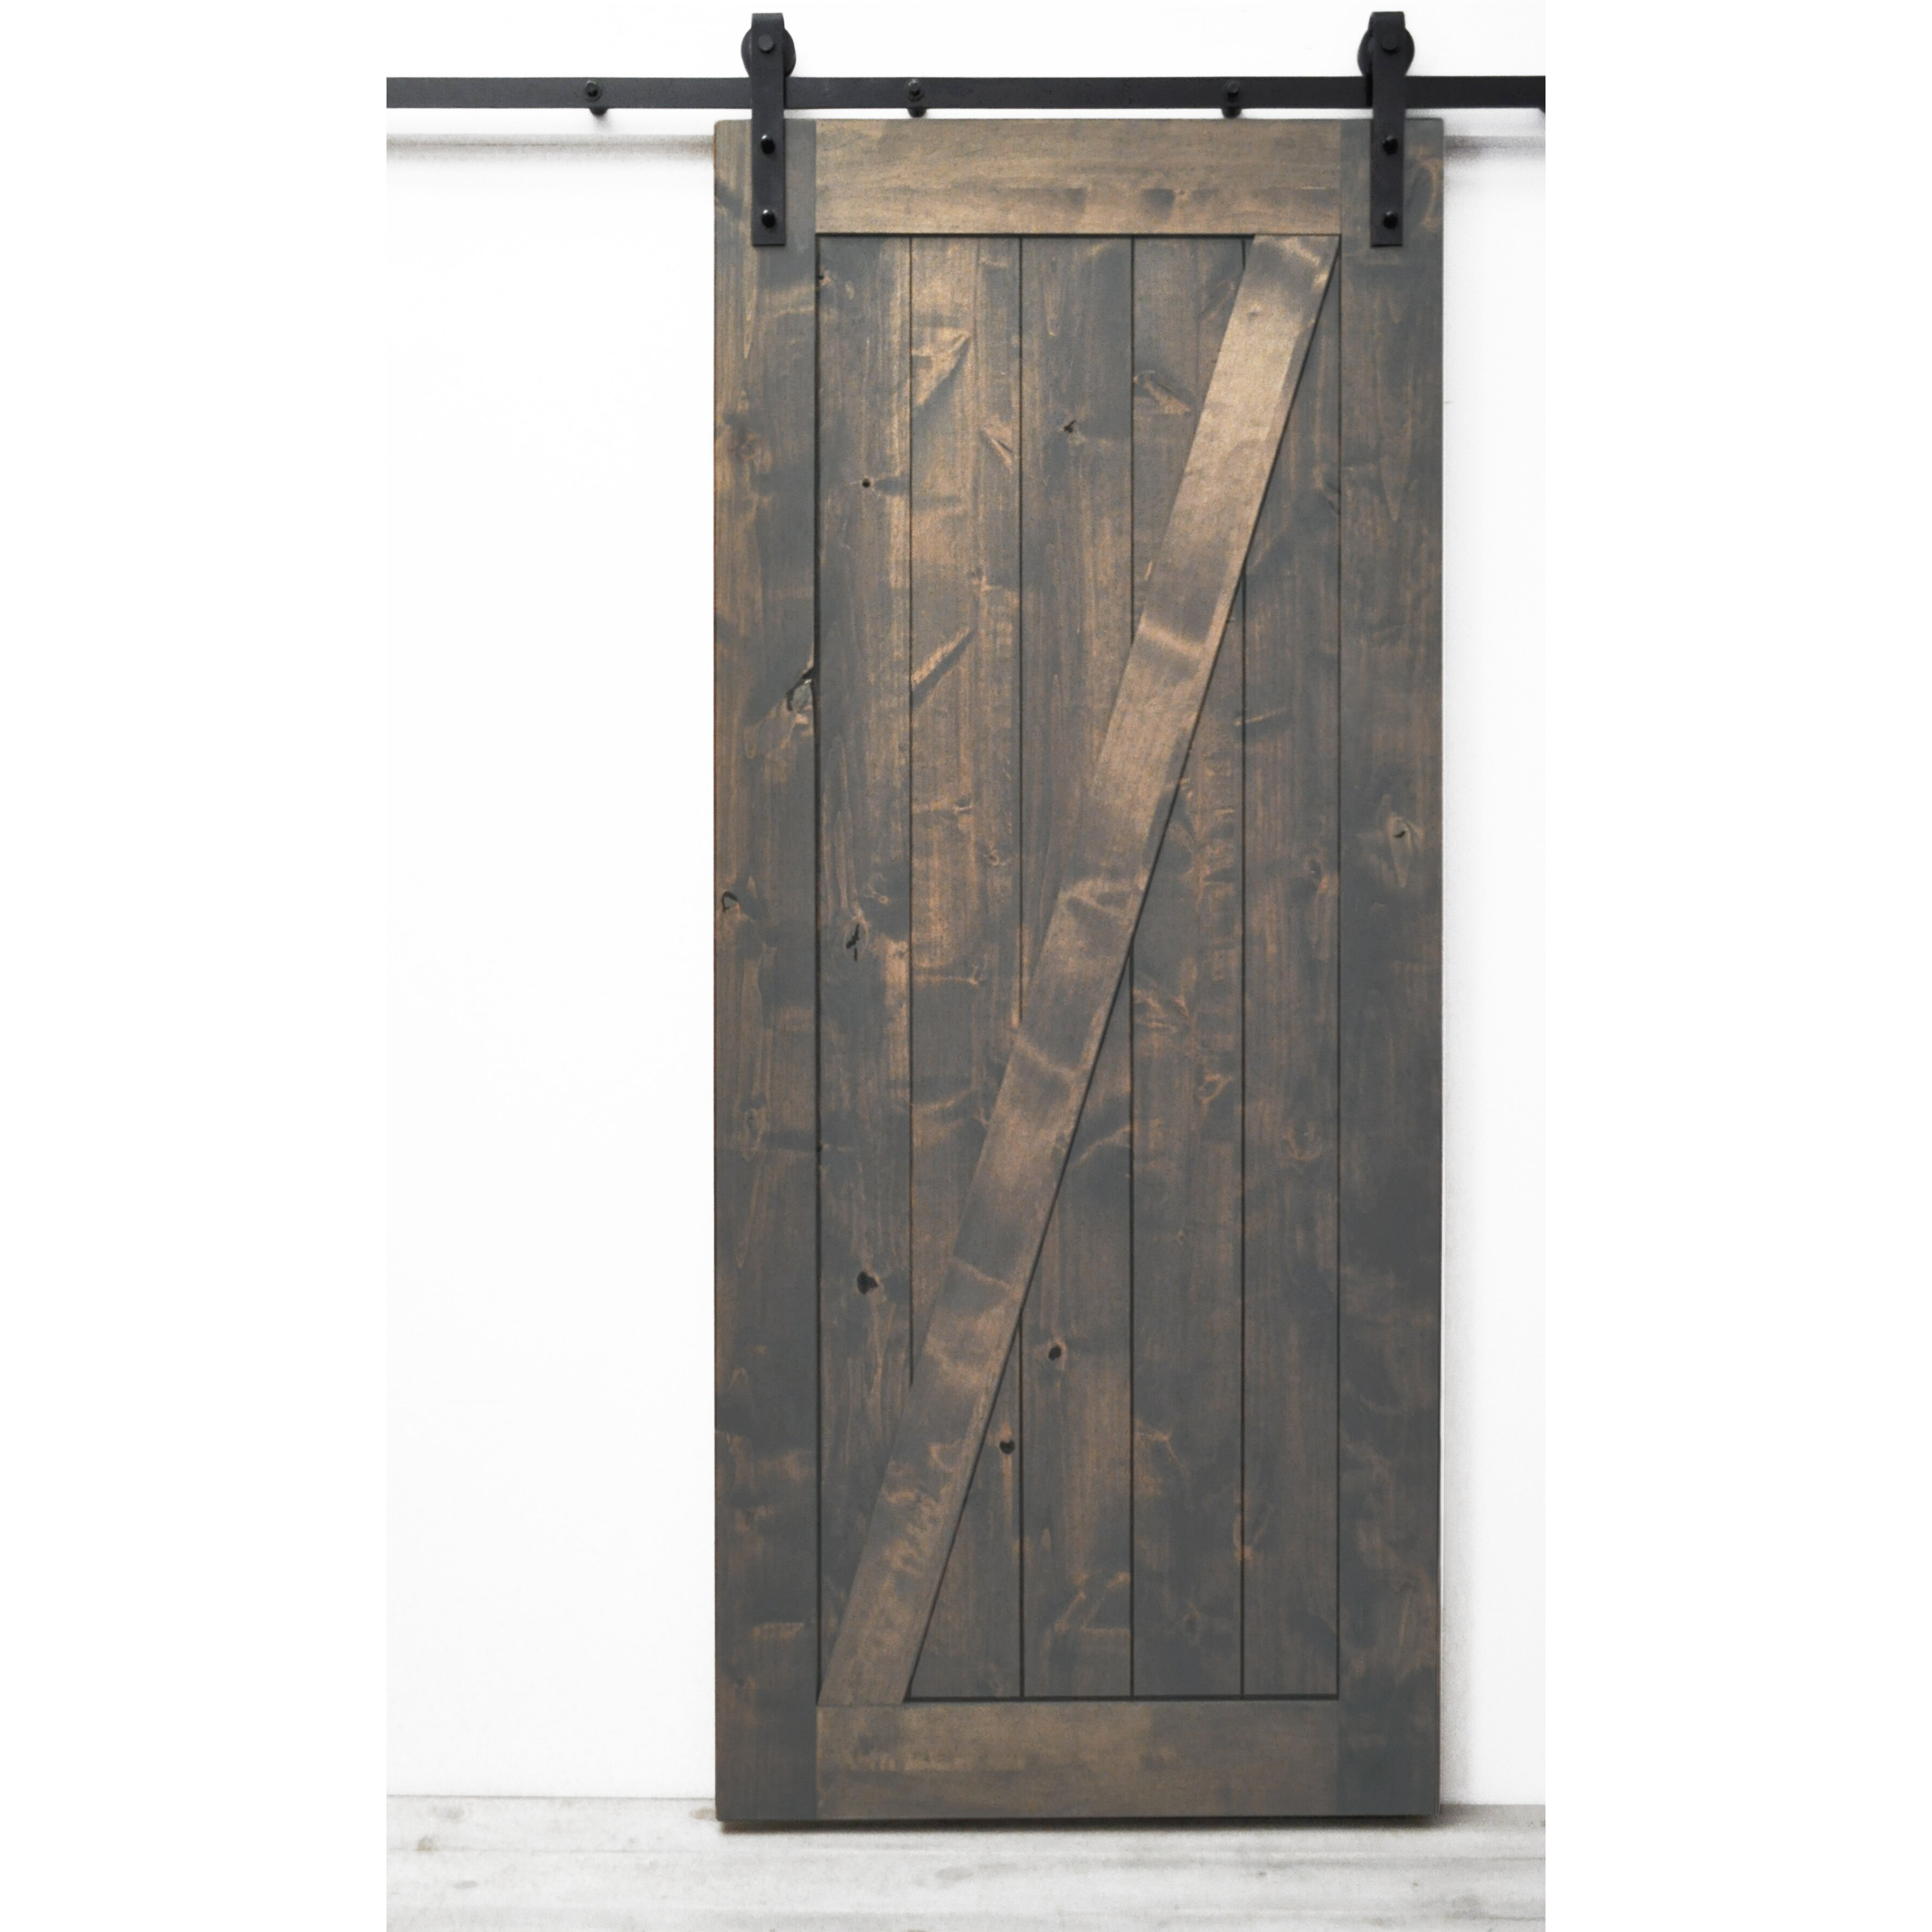 3574 #81674A Dogberry Collections Traditional Z Wood Barn Door & Reviews Wayfair picture/photo Masonite Doors Reviews 41793574